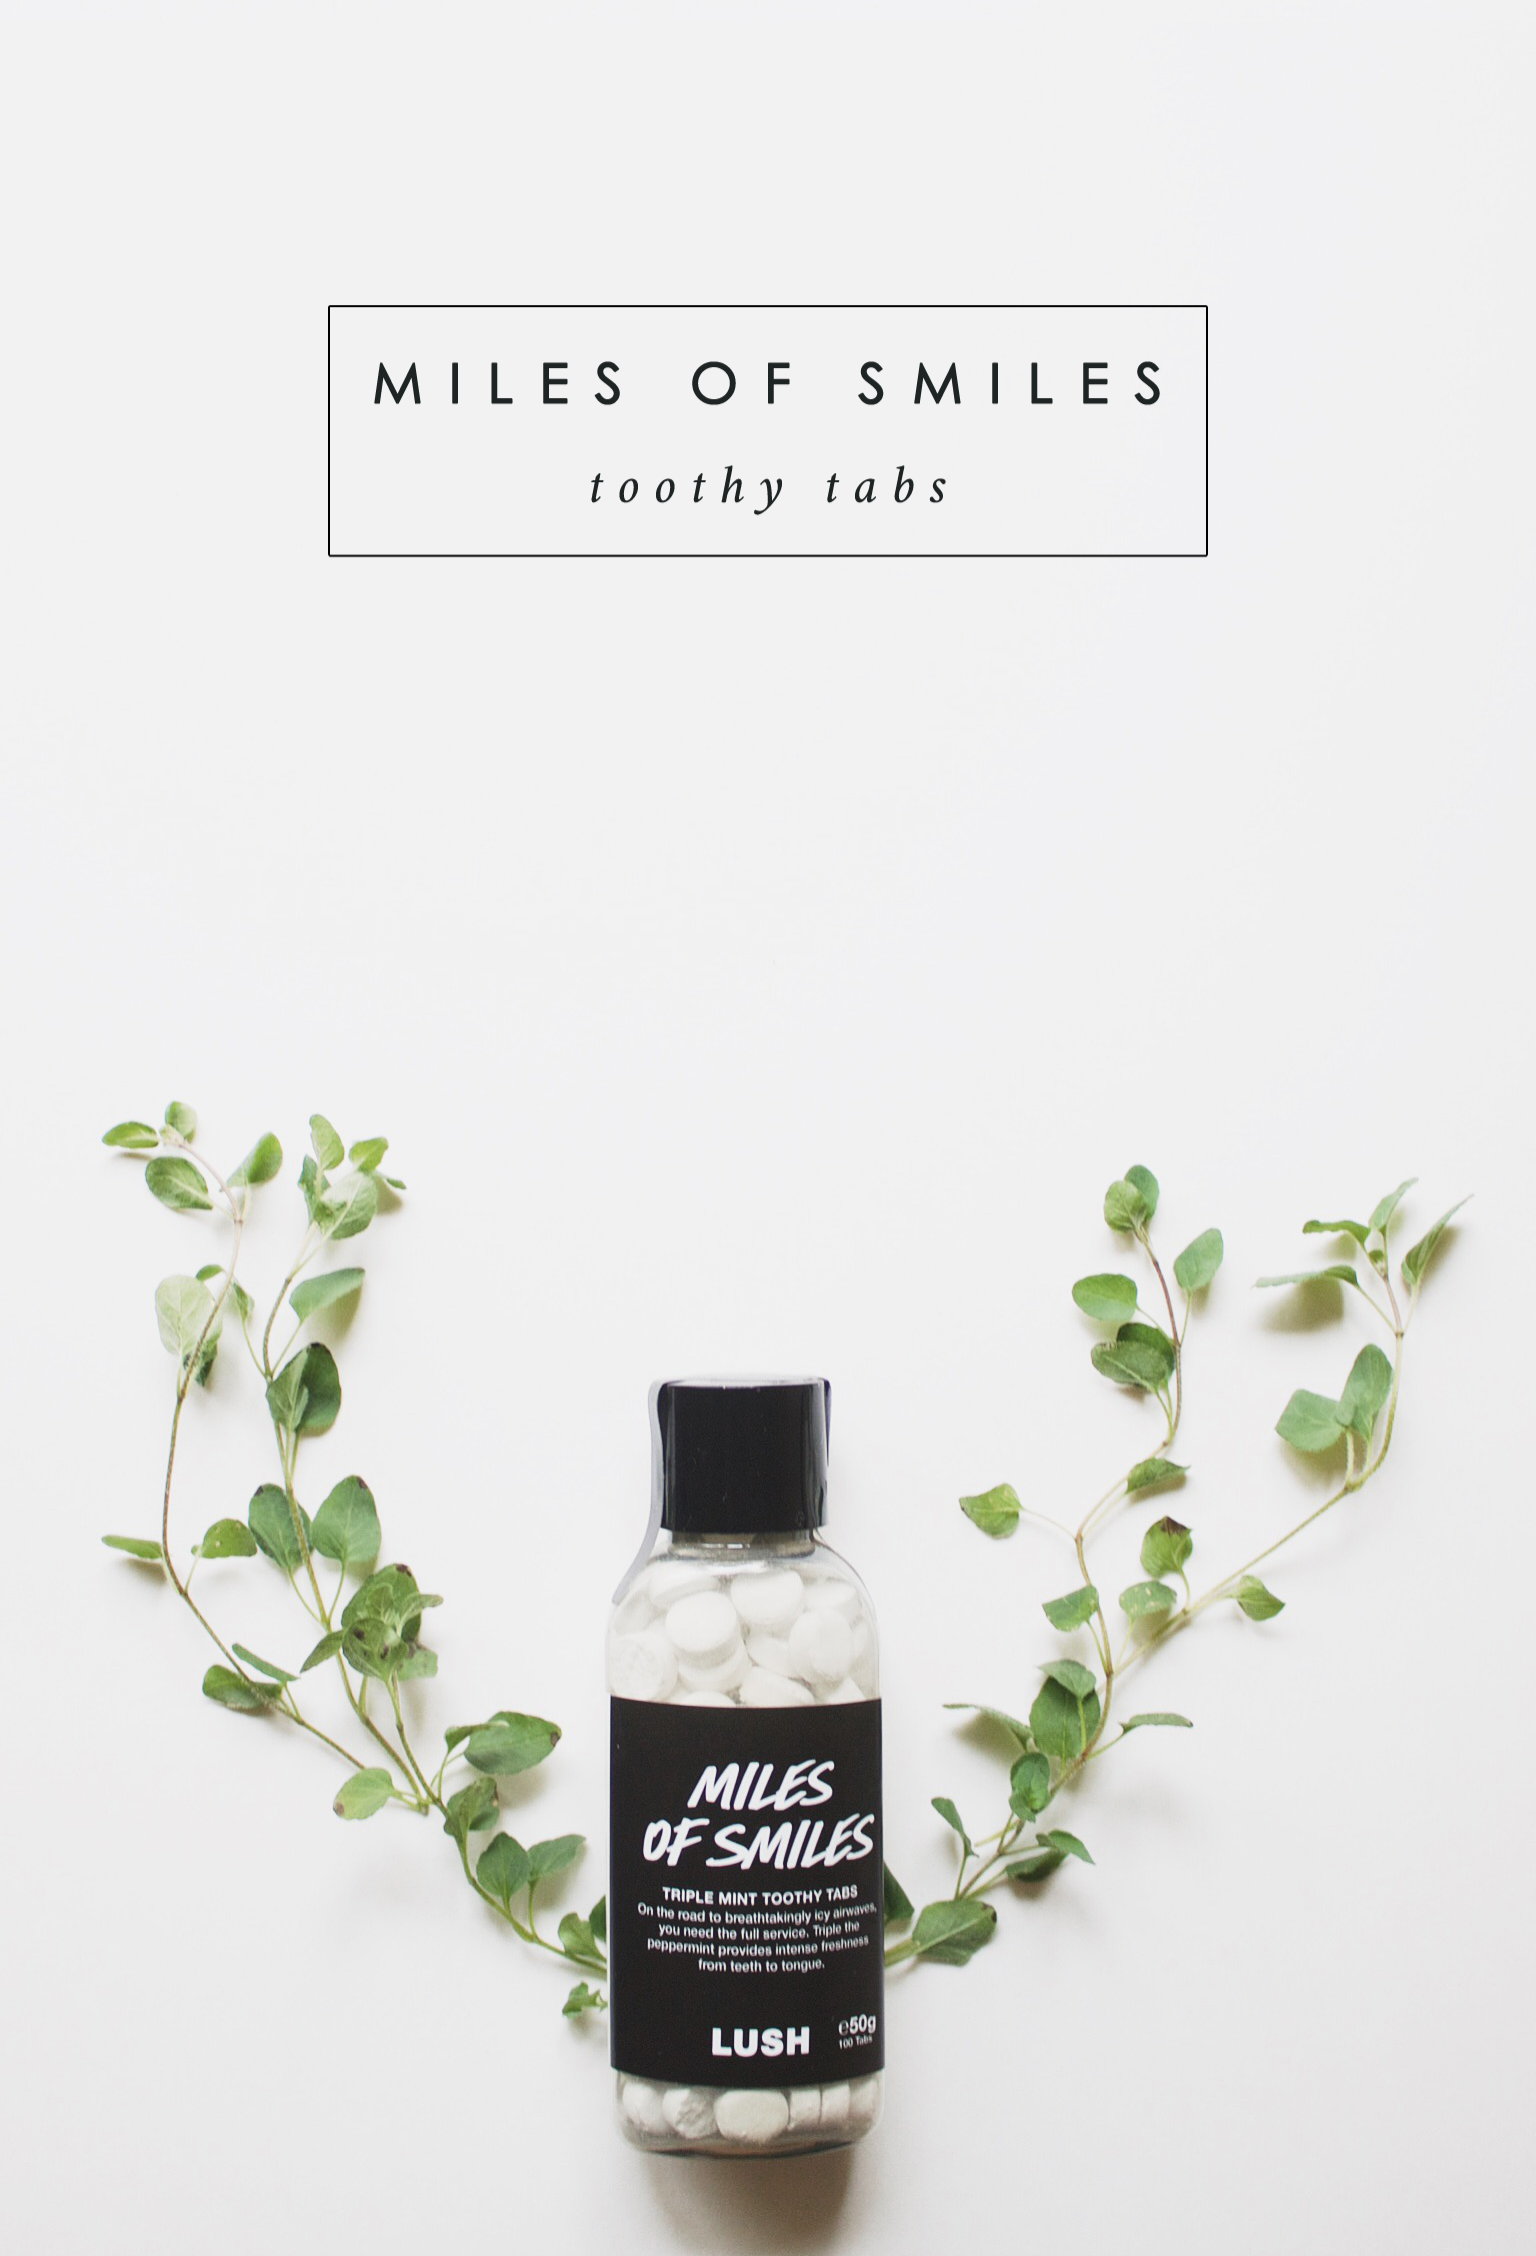 Miles of Smiles Lush Bramble and Thorn